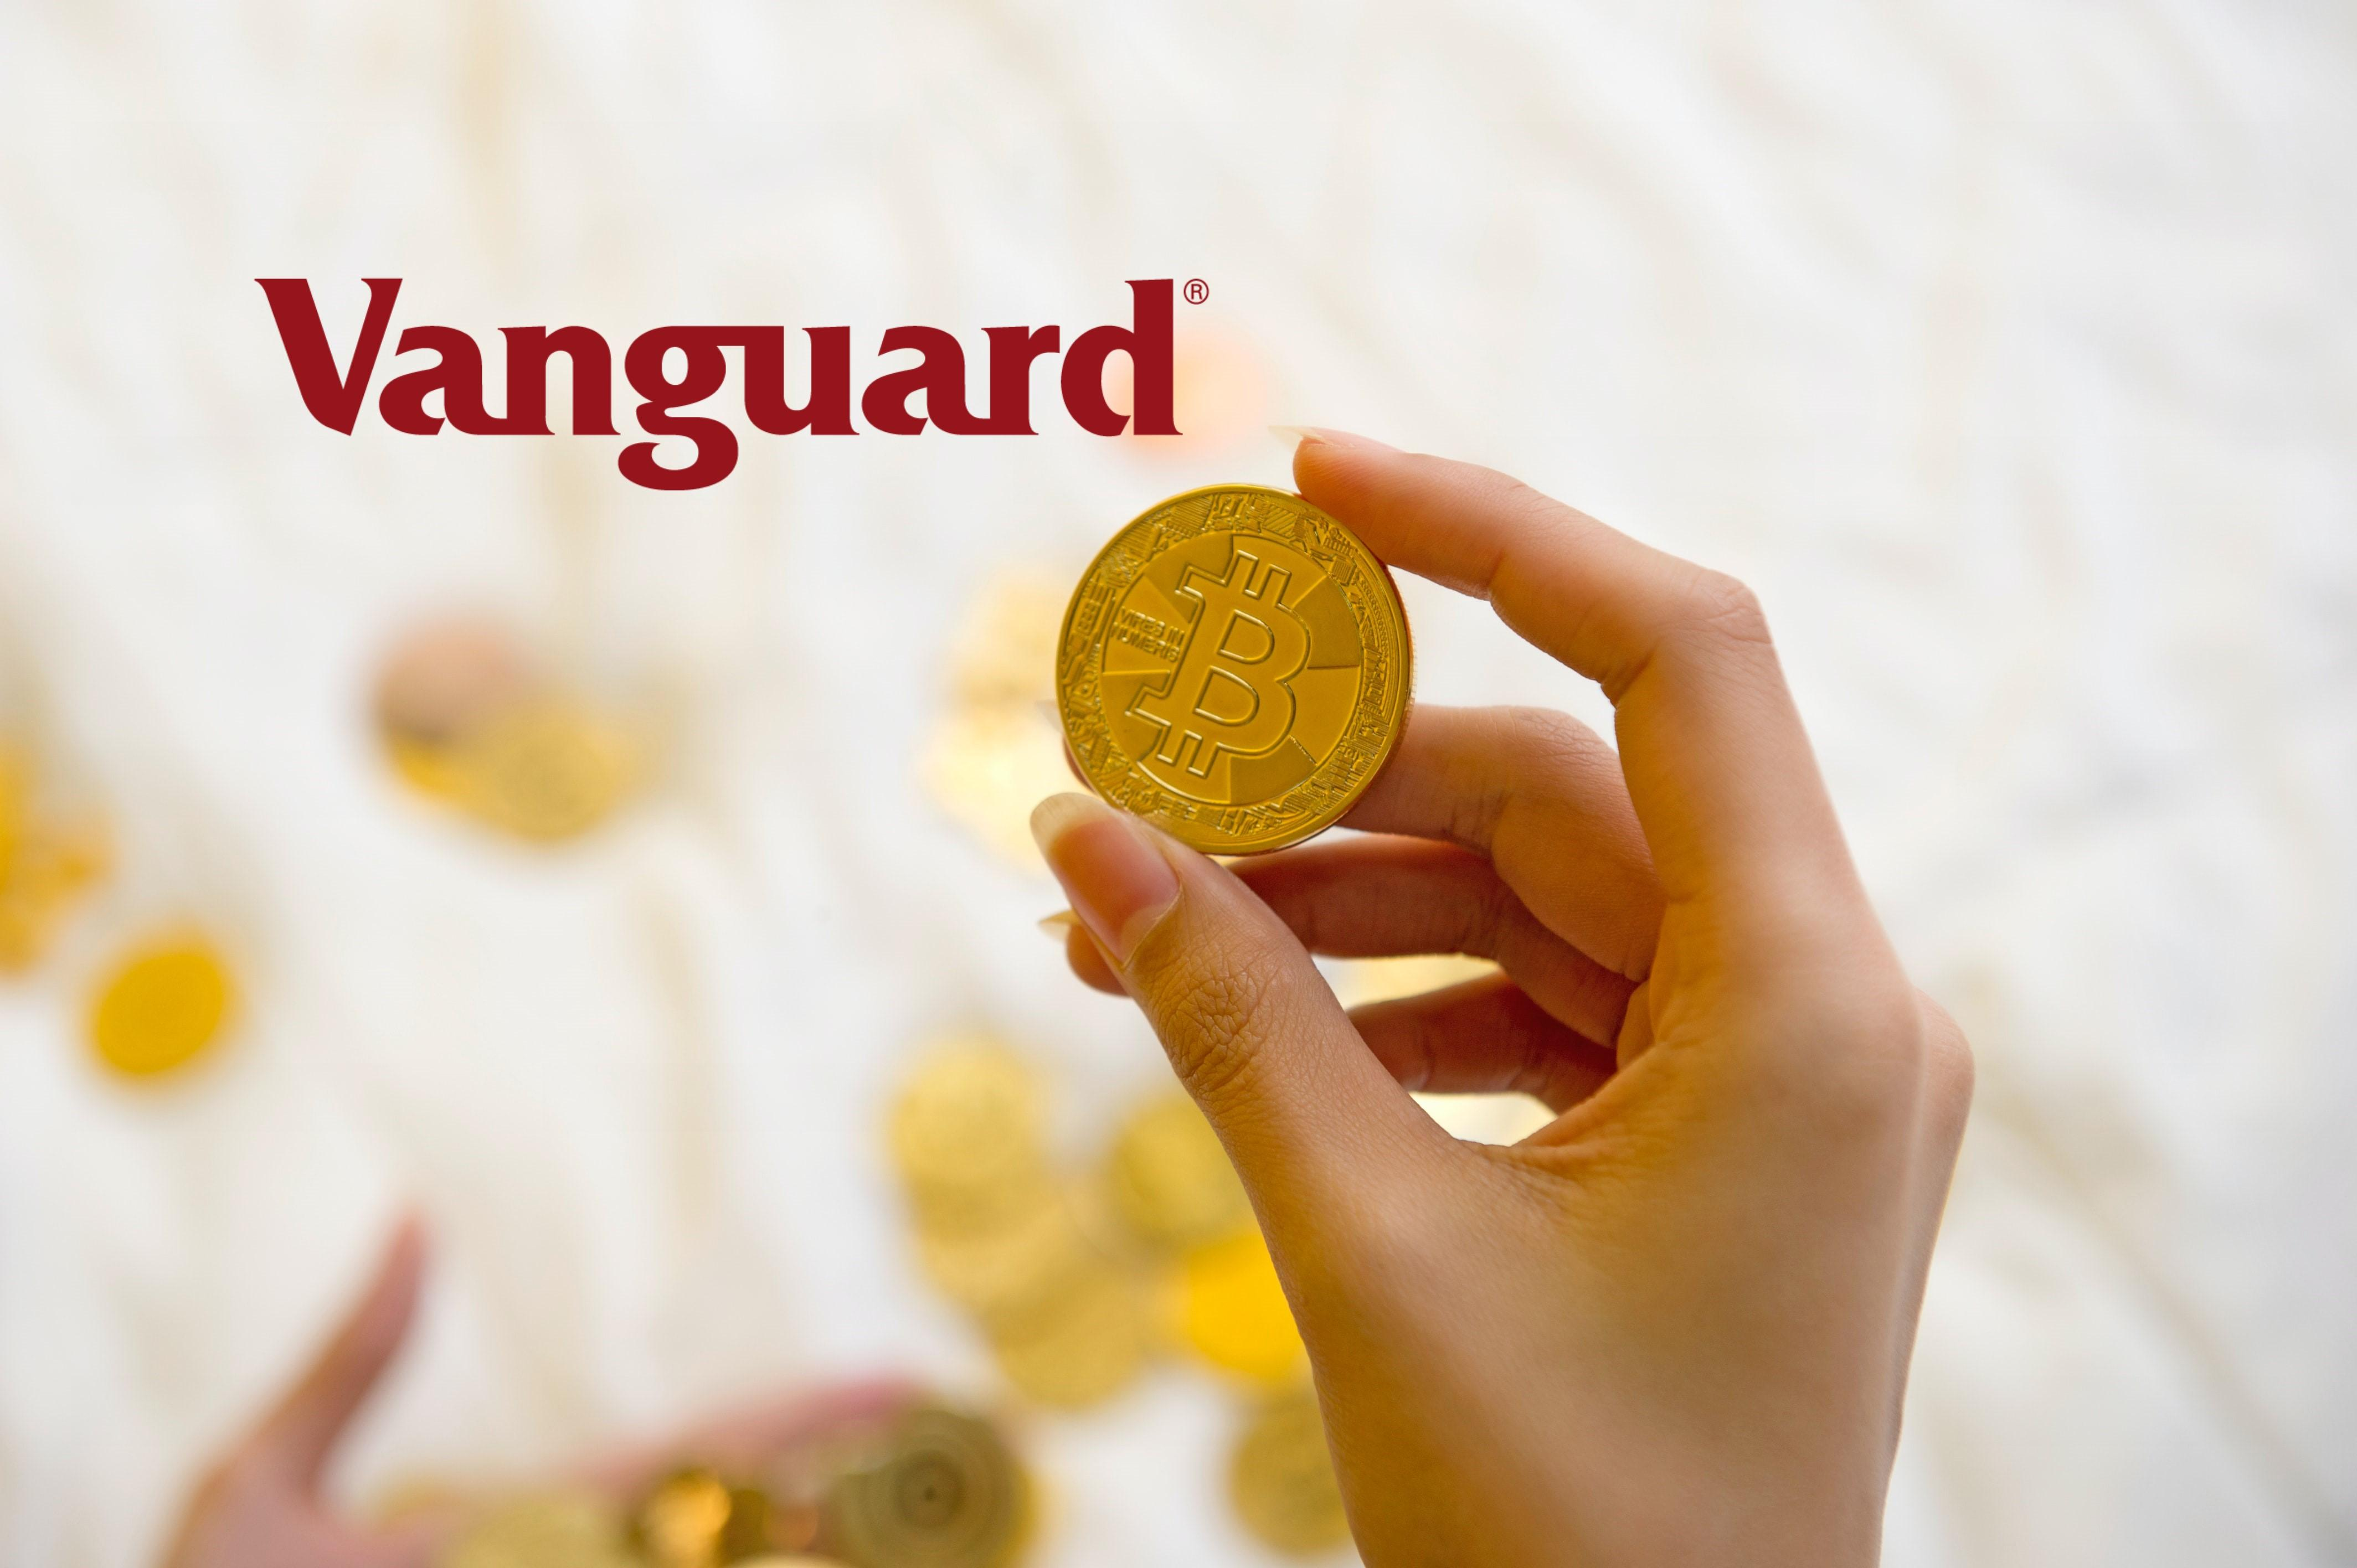 Vanguard logo over bitcoin cryptocurrency replica